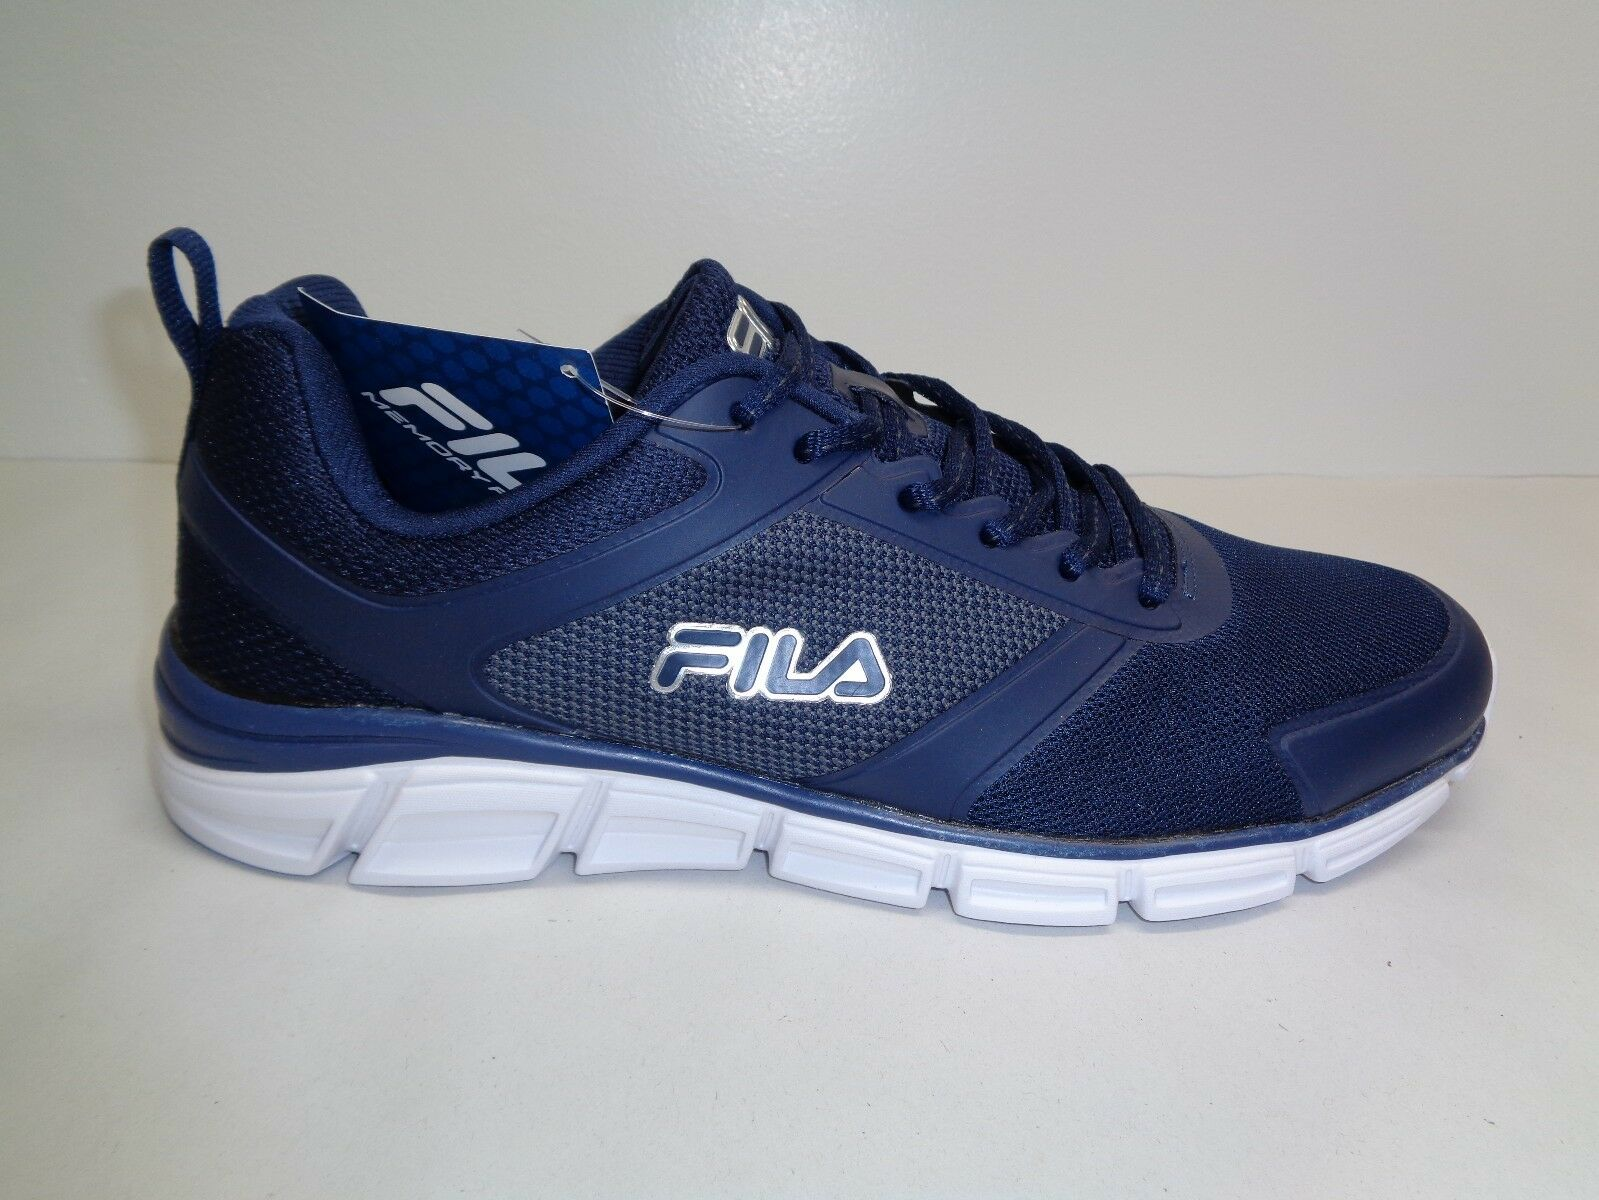 Fila Size 10.5 MEMORY STEELSPRINT bluee Training Athletic Sneakers New Mens shoes